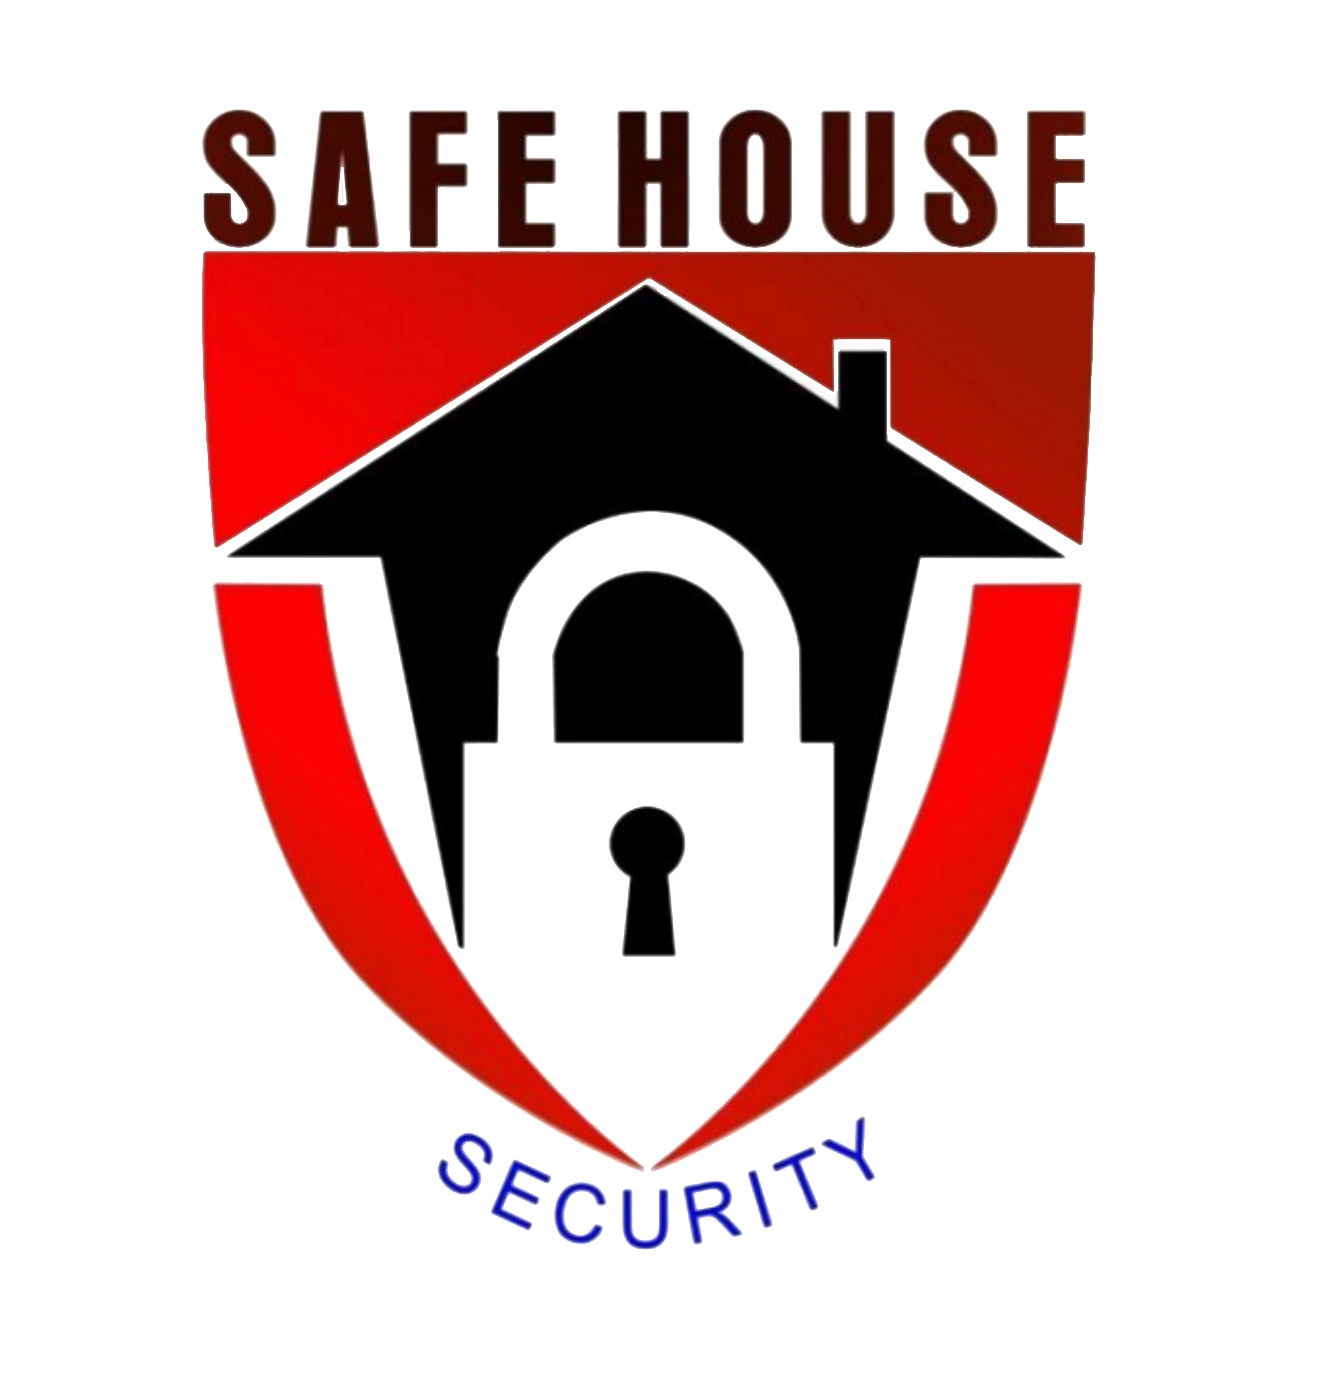 SAFEHOUSE SECURITY